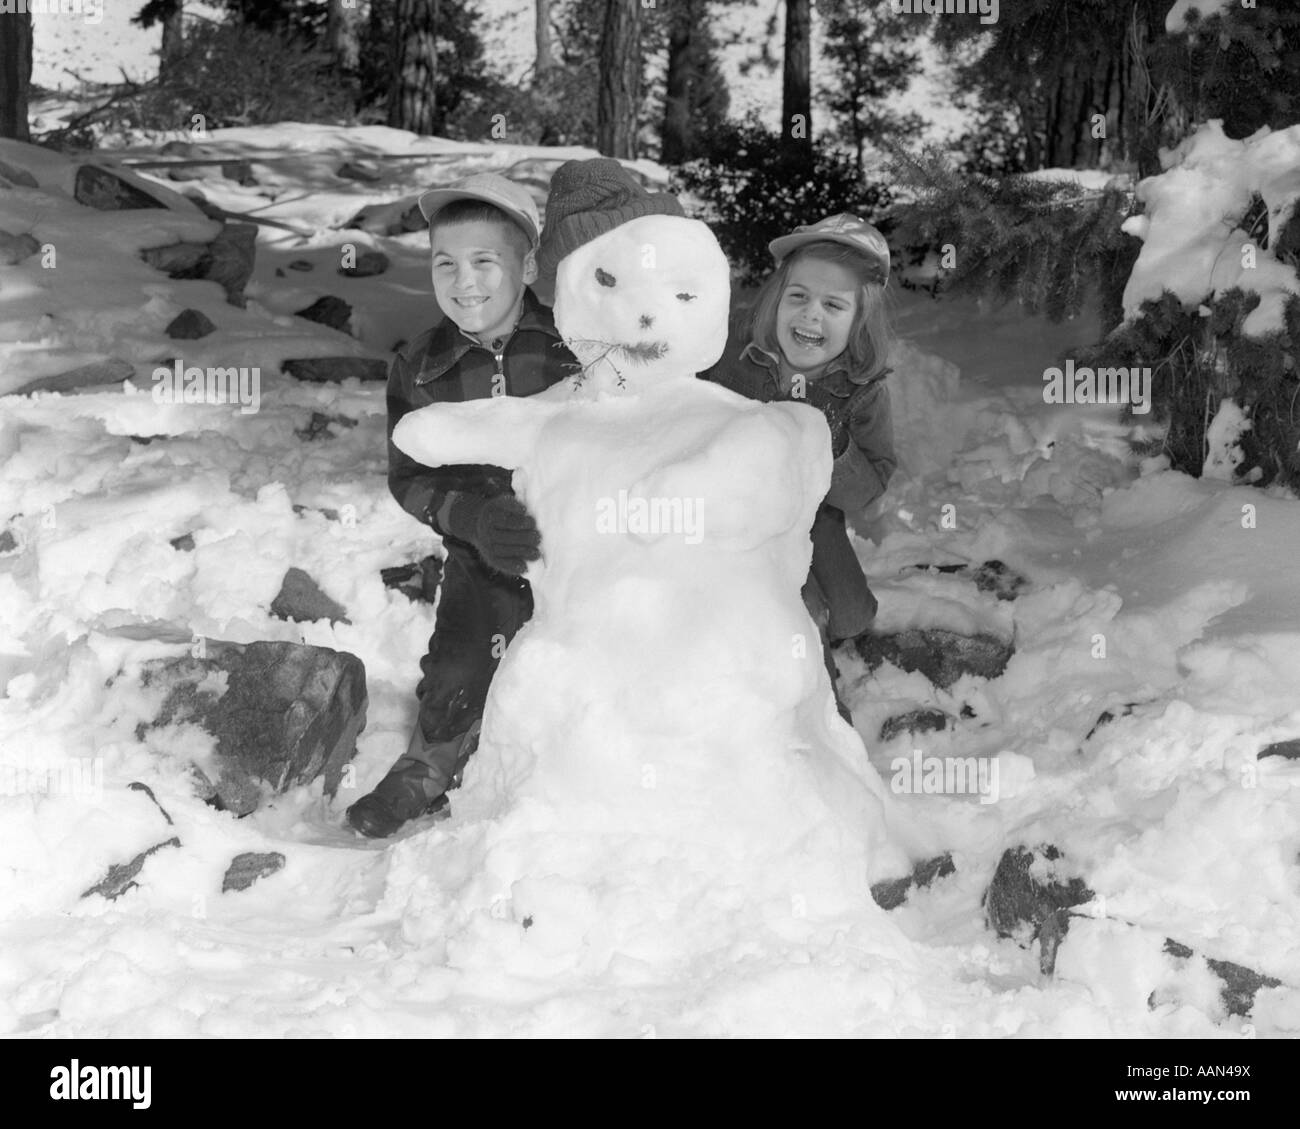 1950s 1960s SMILING BOY AND GIRL BUILDING A SNOWMAN TOGETHER IN SNOWY WOODS - Stock Image